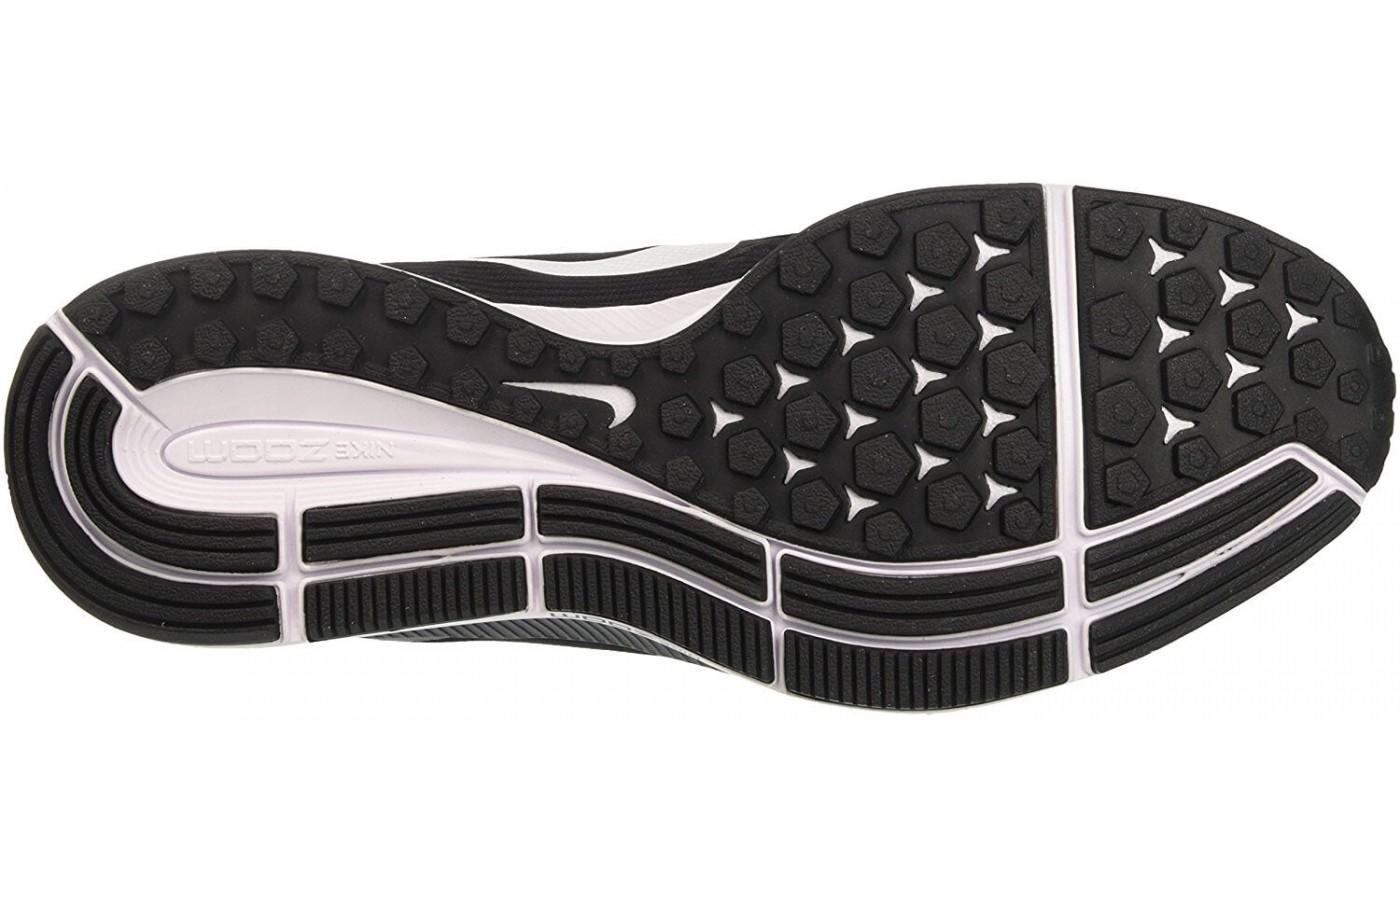 6b5cd6c29c32 ... the outsole of the Nike Air Zoom Pegasus 34 features excellent tread on  the medial and ...